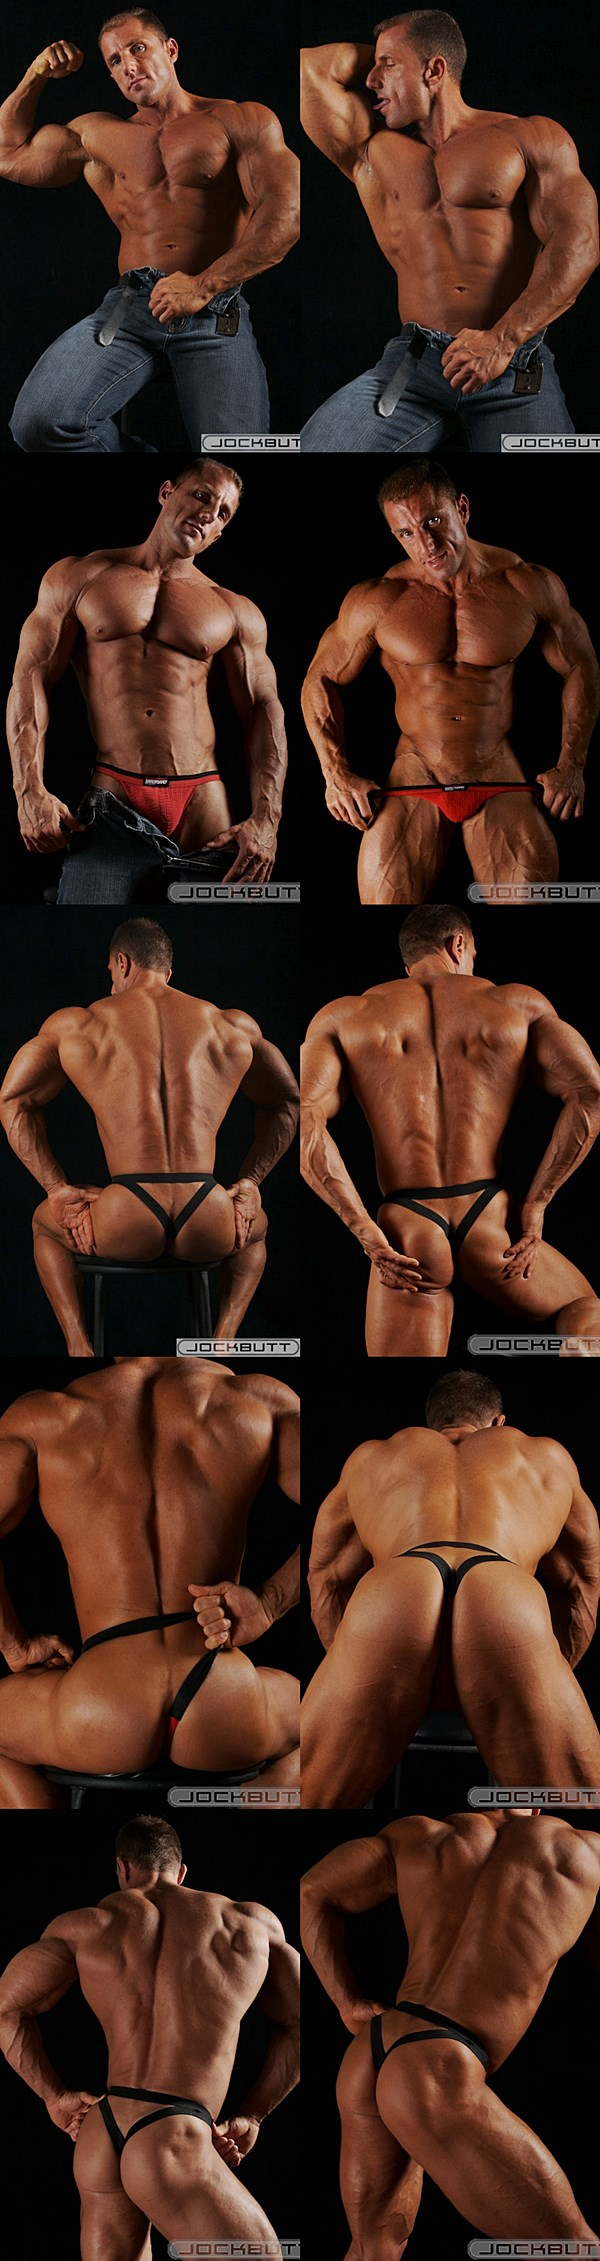 National level bodybuilder Johnny Cruise show off his amazing body and hot bubble butt at Jockbutt